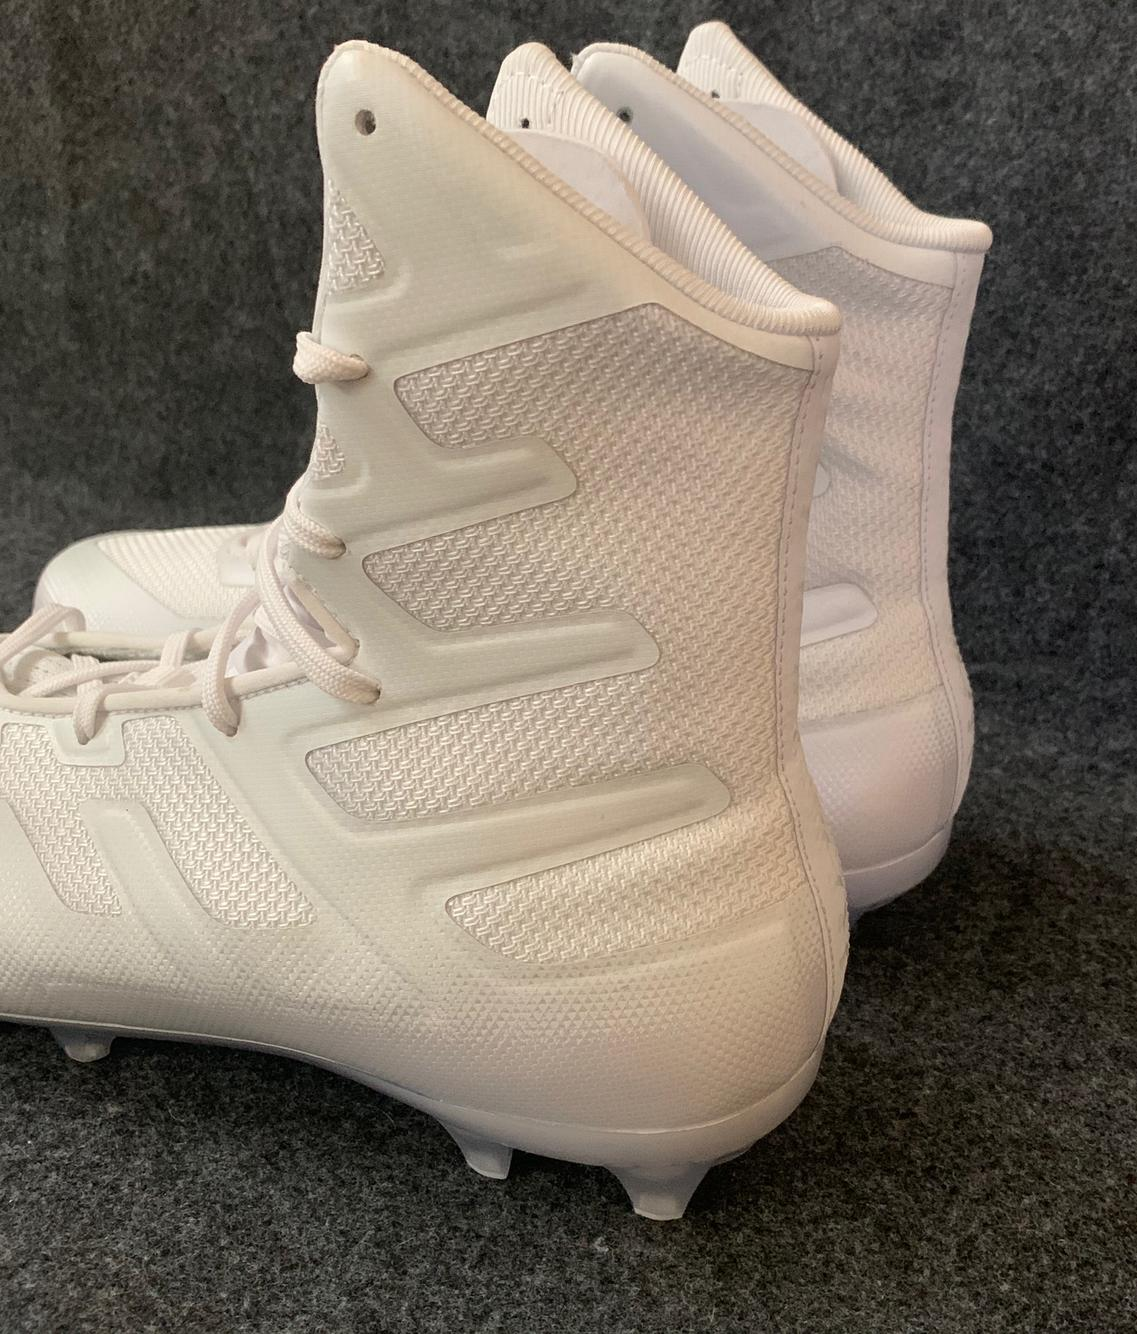 Details about  /Under Armour Highlight Mens NEW 3000177-401 Blue White Football Cleats Size 12